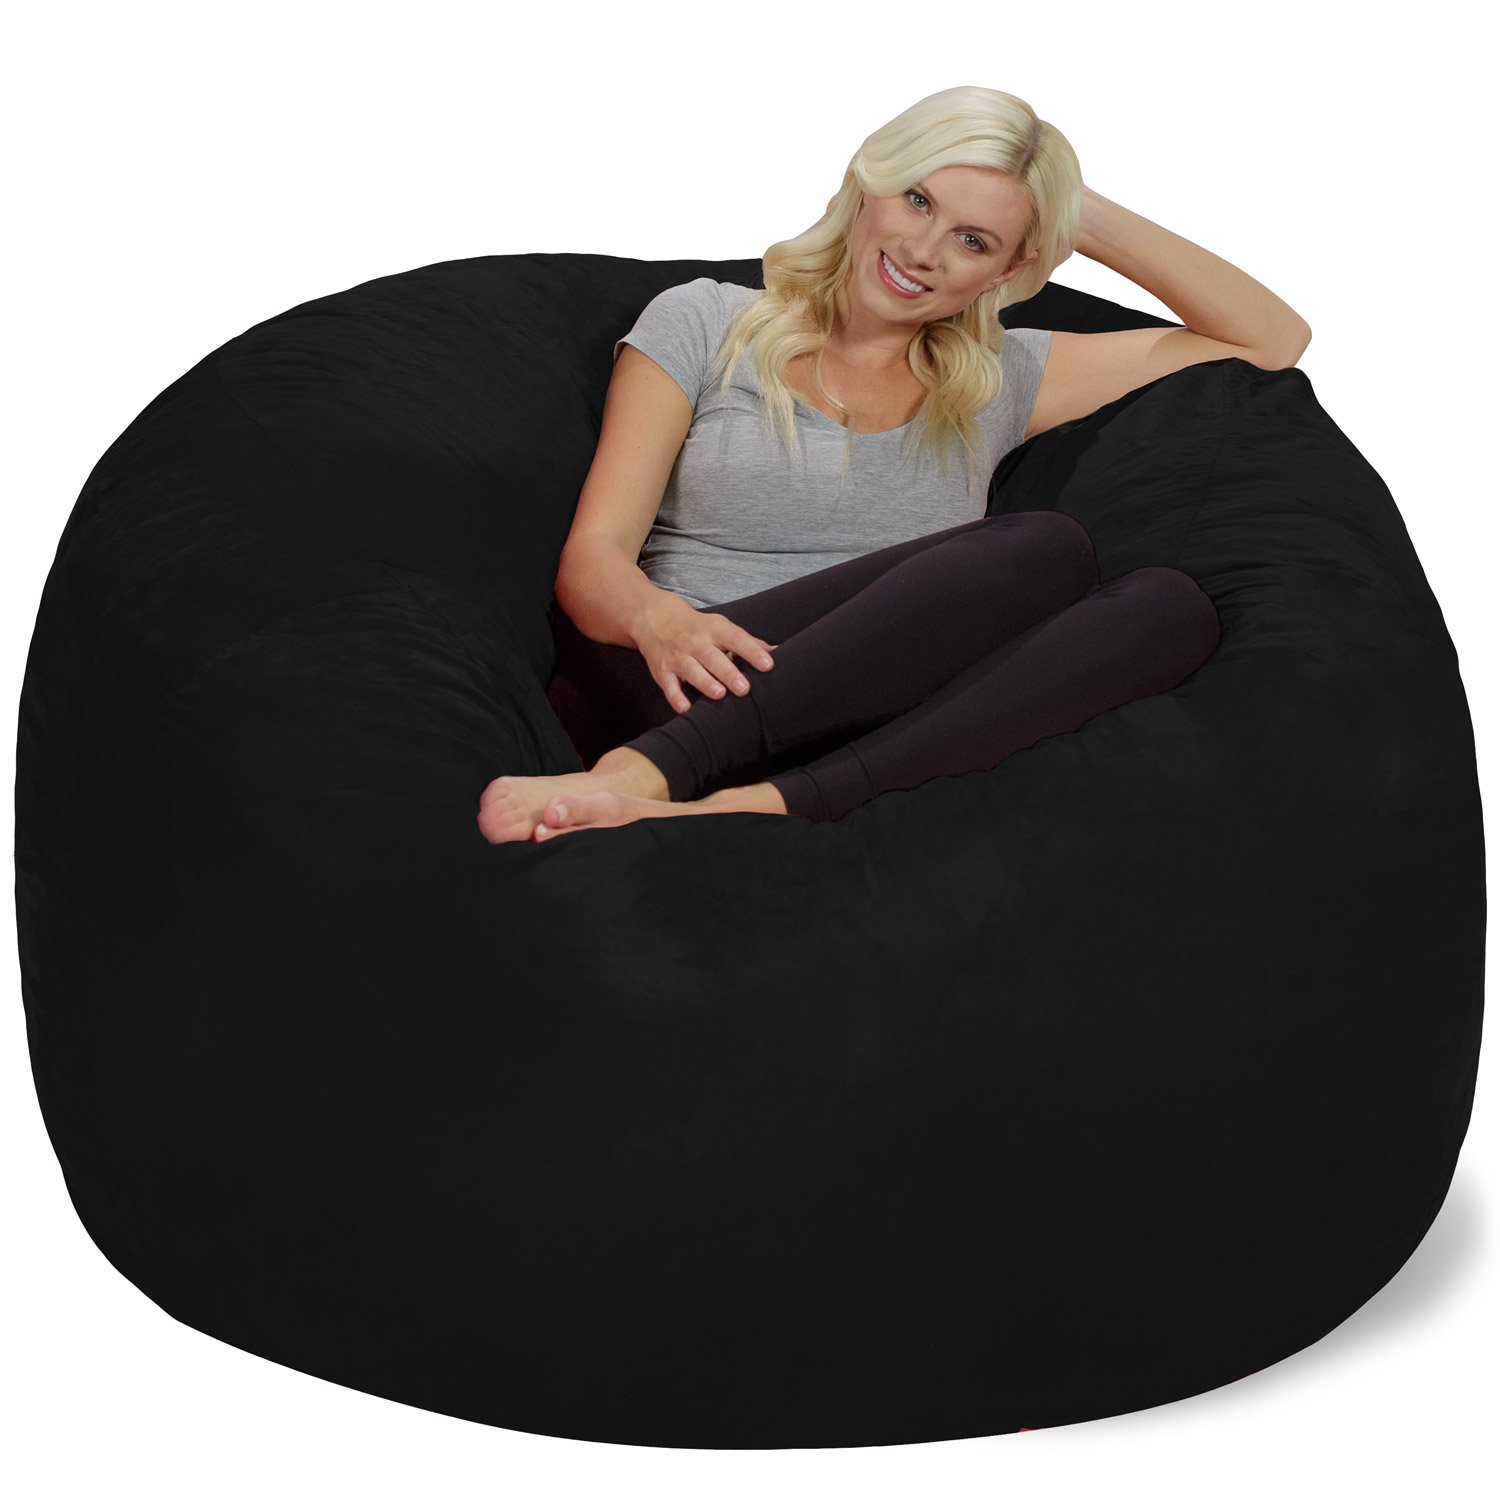 Amazon.com: Chill Sack - Bean Bags 6-Feet Bean Bag, Giant, Black: Kitchen &  Dining - Amazon.com: Chill Sack - Bean Bags 6-Feet Bean Bag, Giant, Black